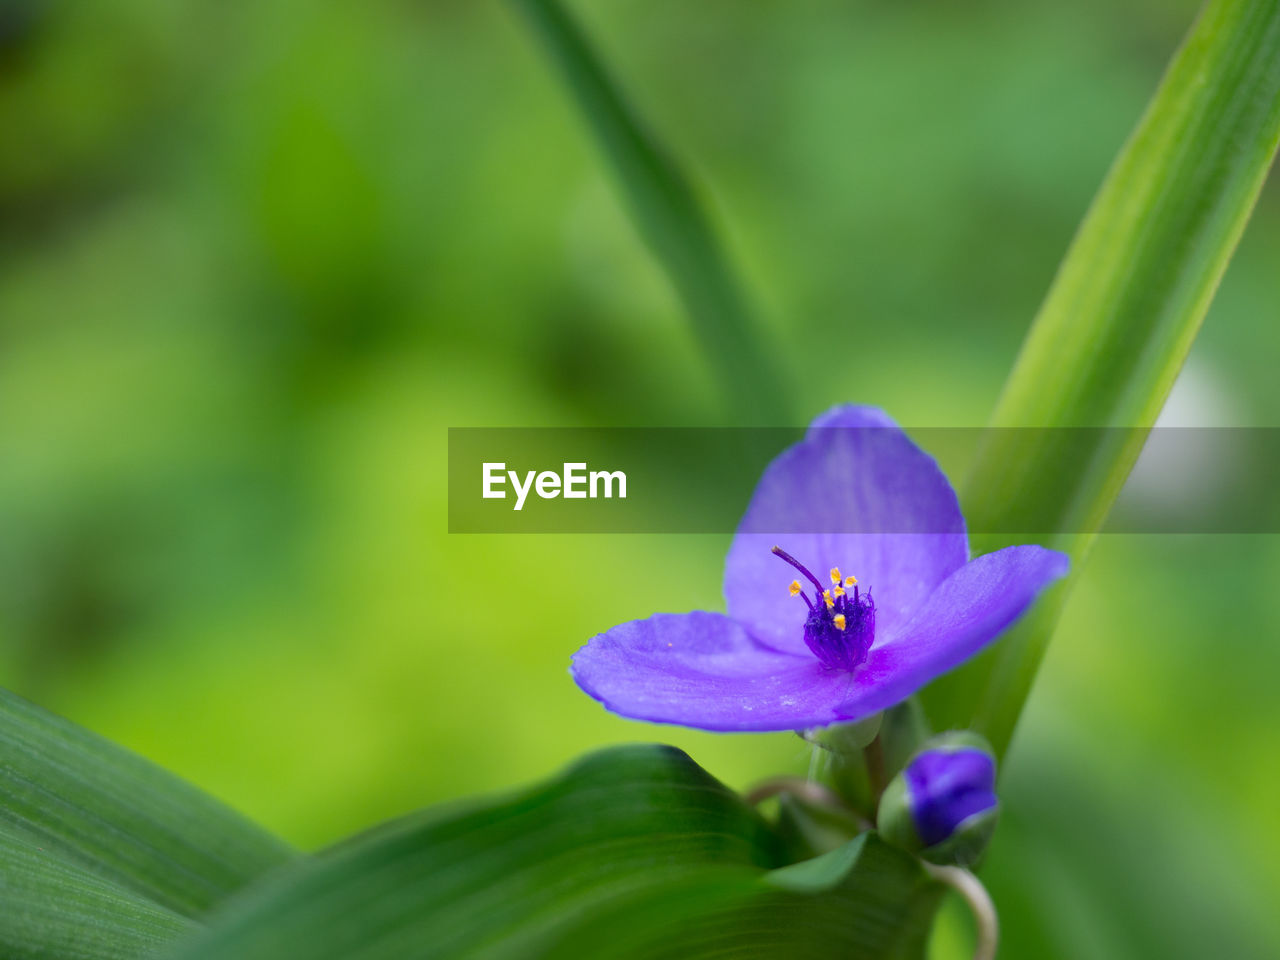 flowering plant, flower, plant, freshness, vulnerability, fragility, petal, beauty in nature, growth, flower head, inflorescence, close-up, purple, nature, green color, day, one animal, focus on foreground, leaf, selective focus, no people, pollen, pollination